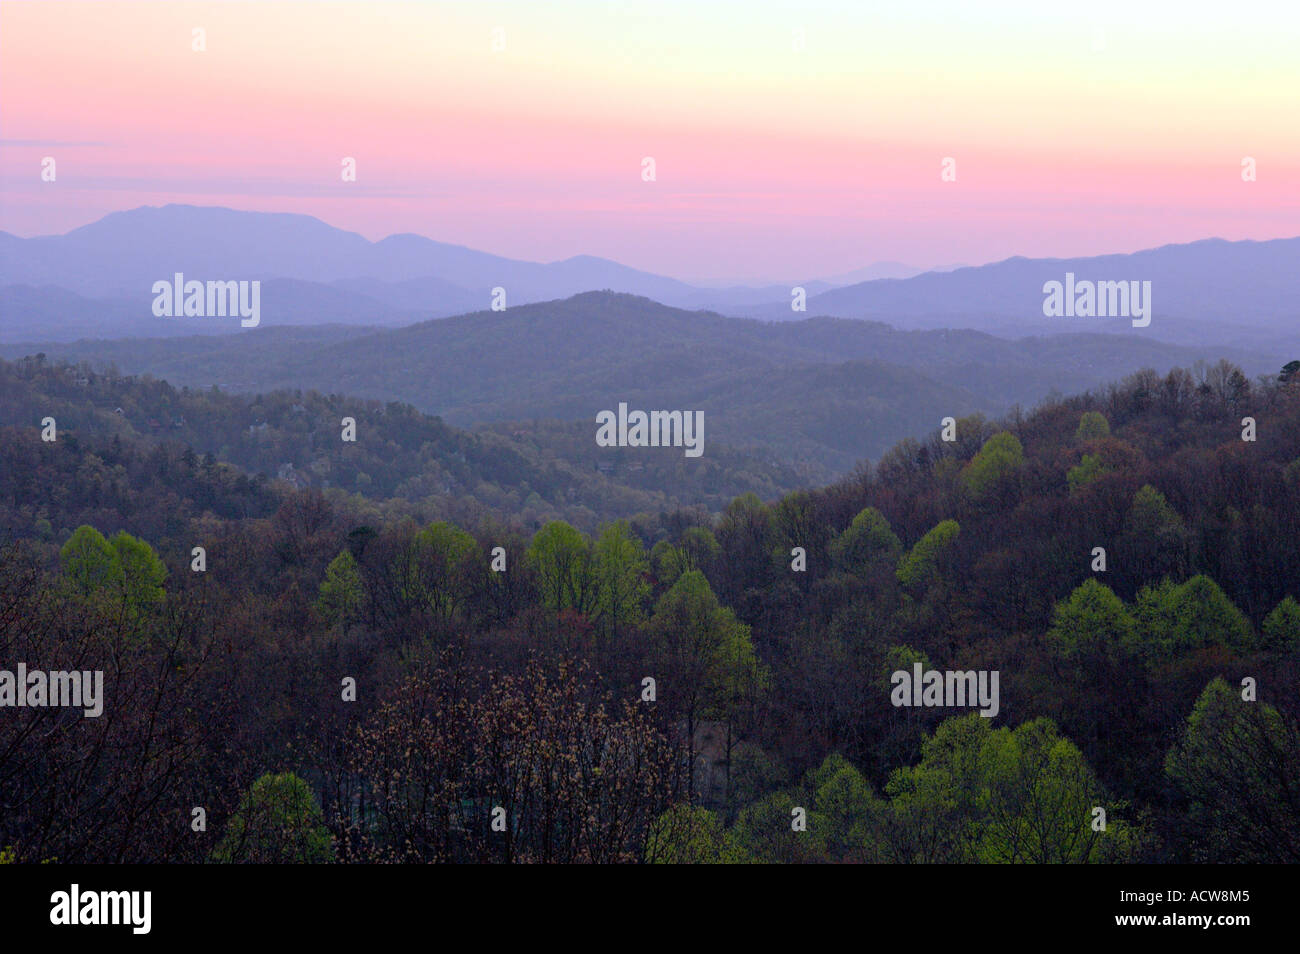 Layered mountains of the Smokies at sunrise from Ober Gatlinburg above the city of Gatlinburg Tennessee USA Stock Photo